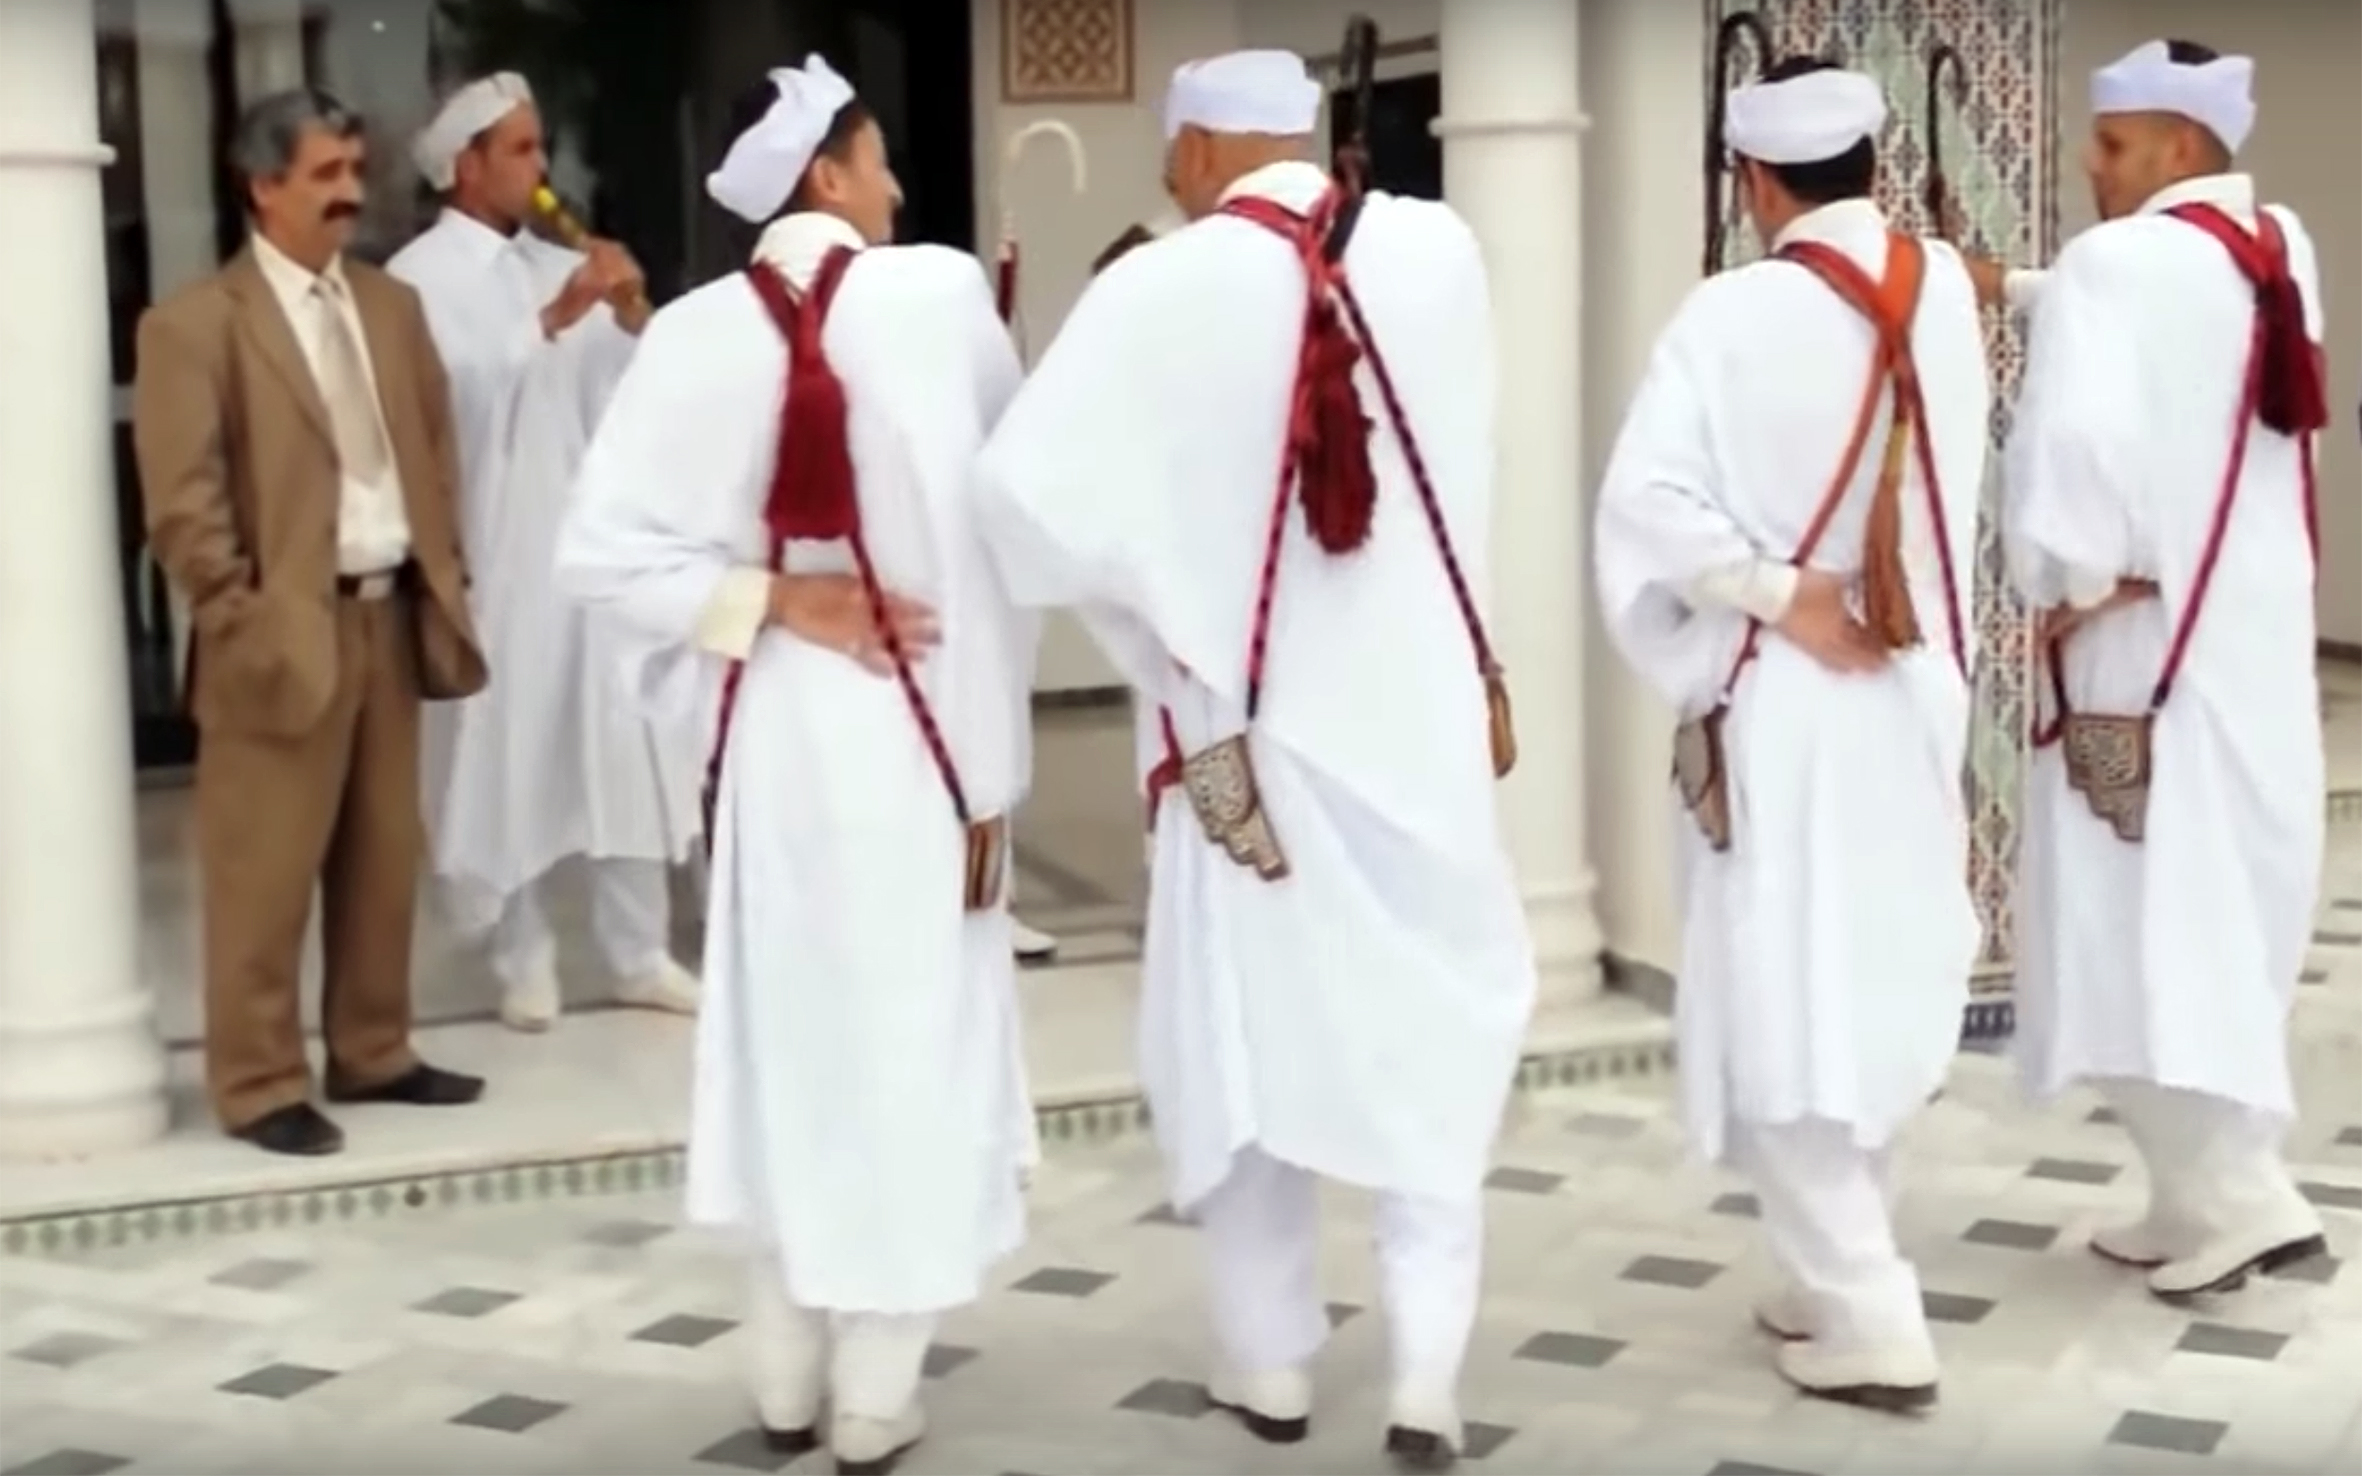 22.Alaoui Danse / Algeria - Alaoui Danse is the most widespread dance through the west of Algeria. It is carried out by the men to celebrate victory and pride with movements of the feet and shoulders. The dancers express their attachment to the ground and moment their capacity of endurance.